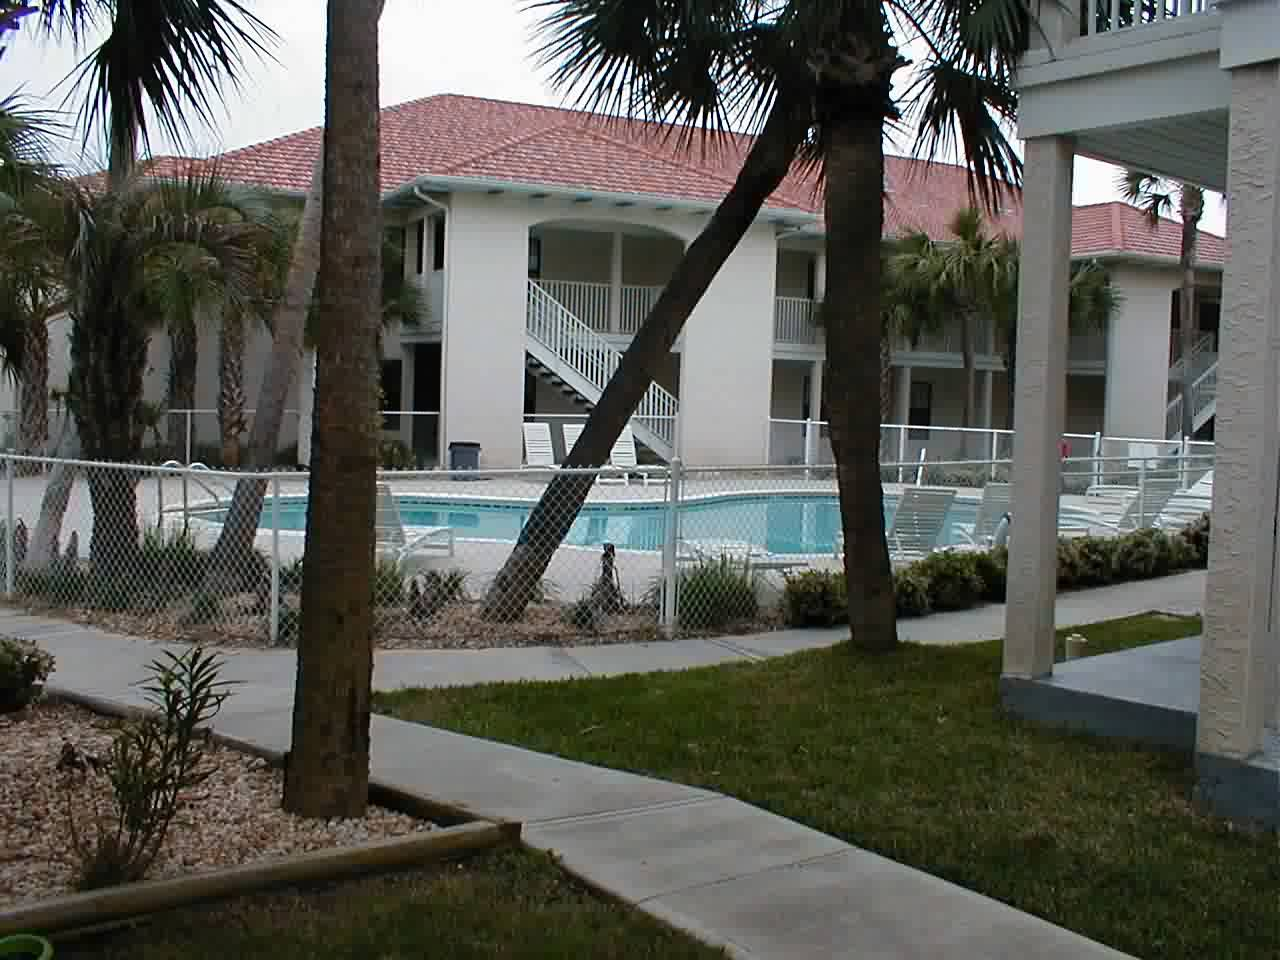 South Pool - Just steps from our units